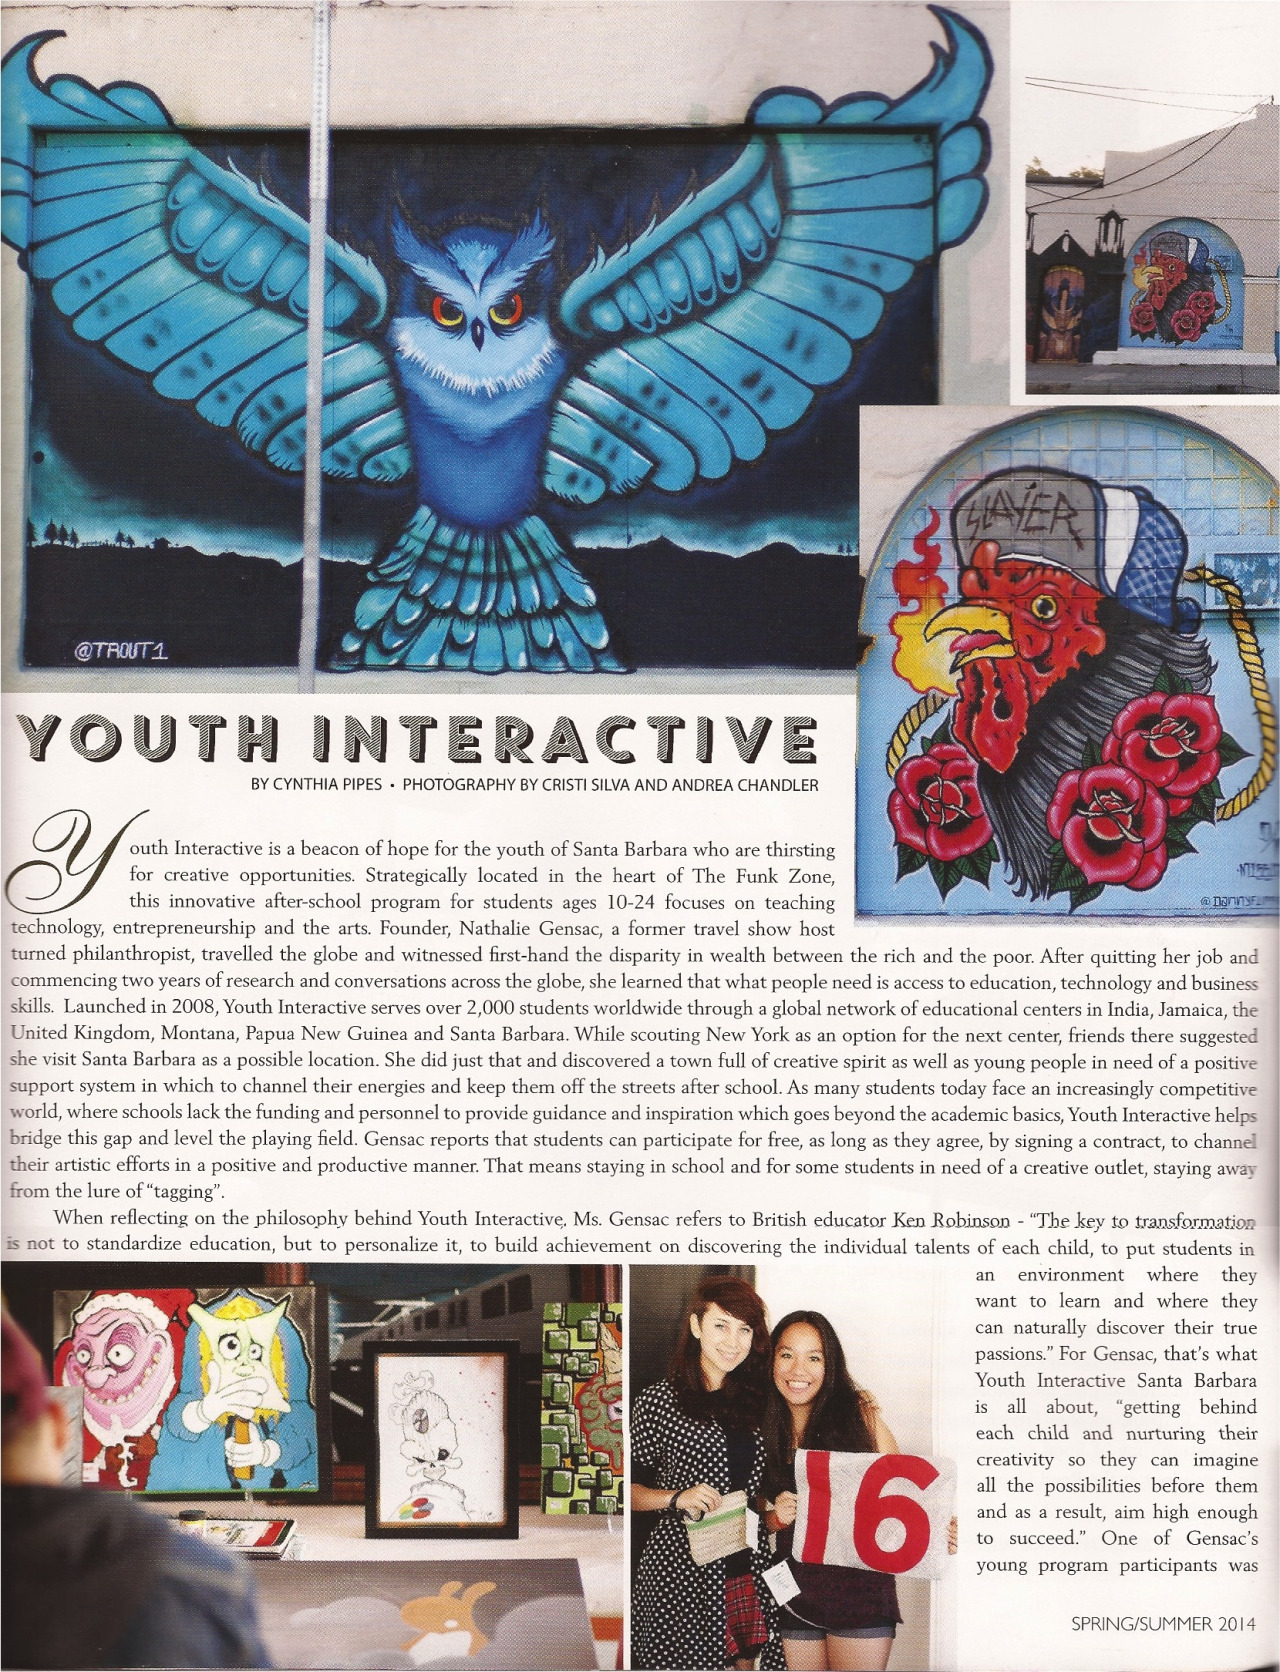 Go get yourself a copy of the Spring/Summer 2014 issue Santa Barbara's Dining and Destinations magazine and check out the two page spread on Youth Interactive! Thanks again guys, we feel honored!